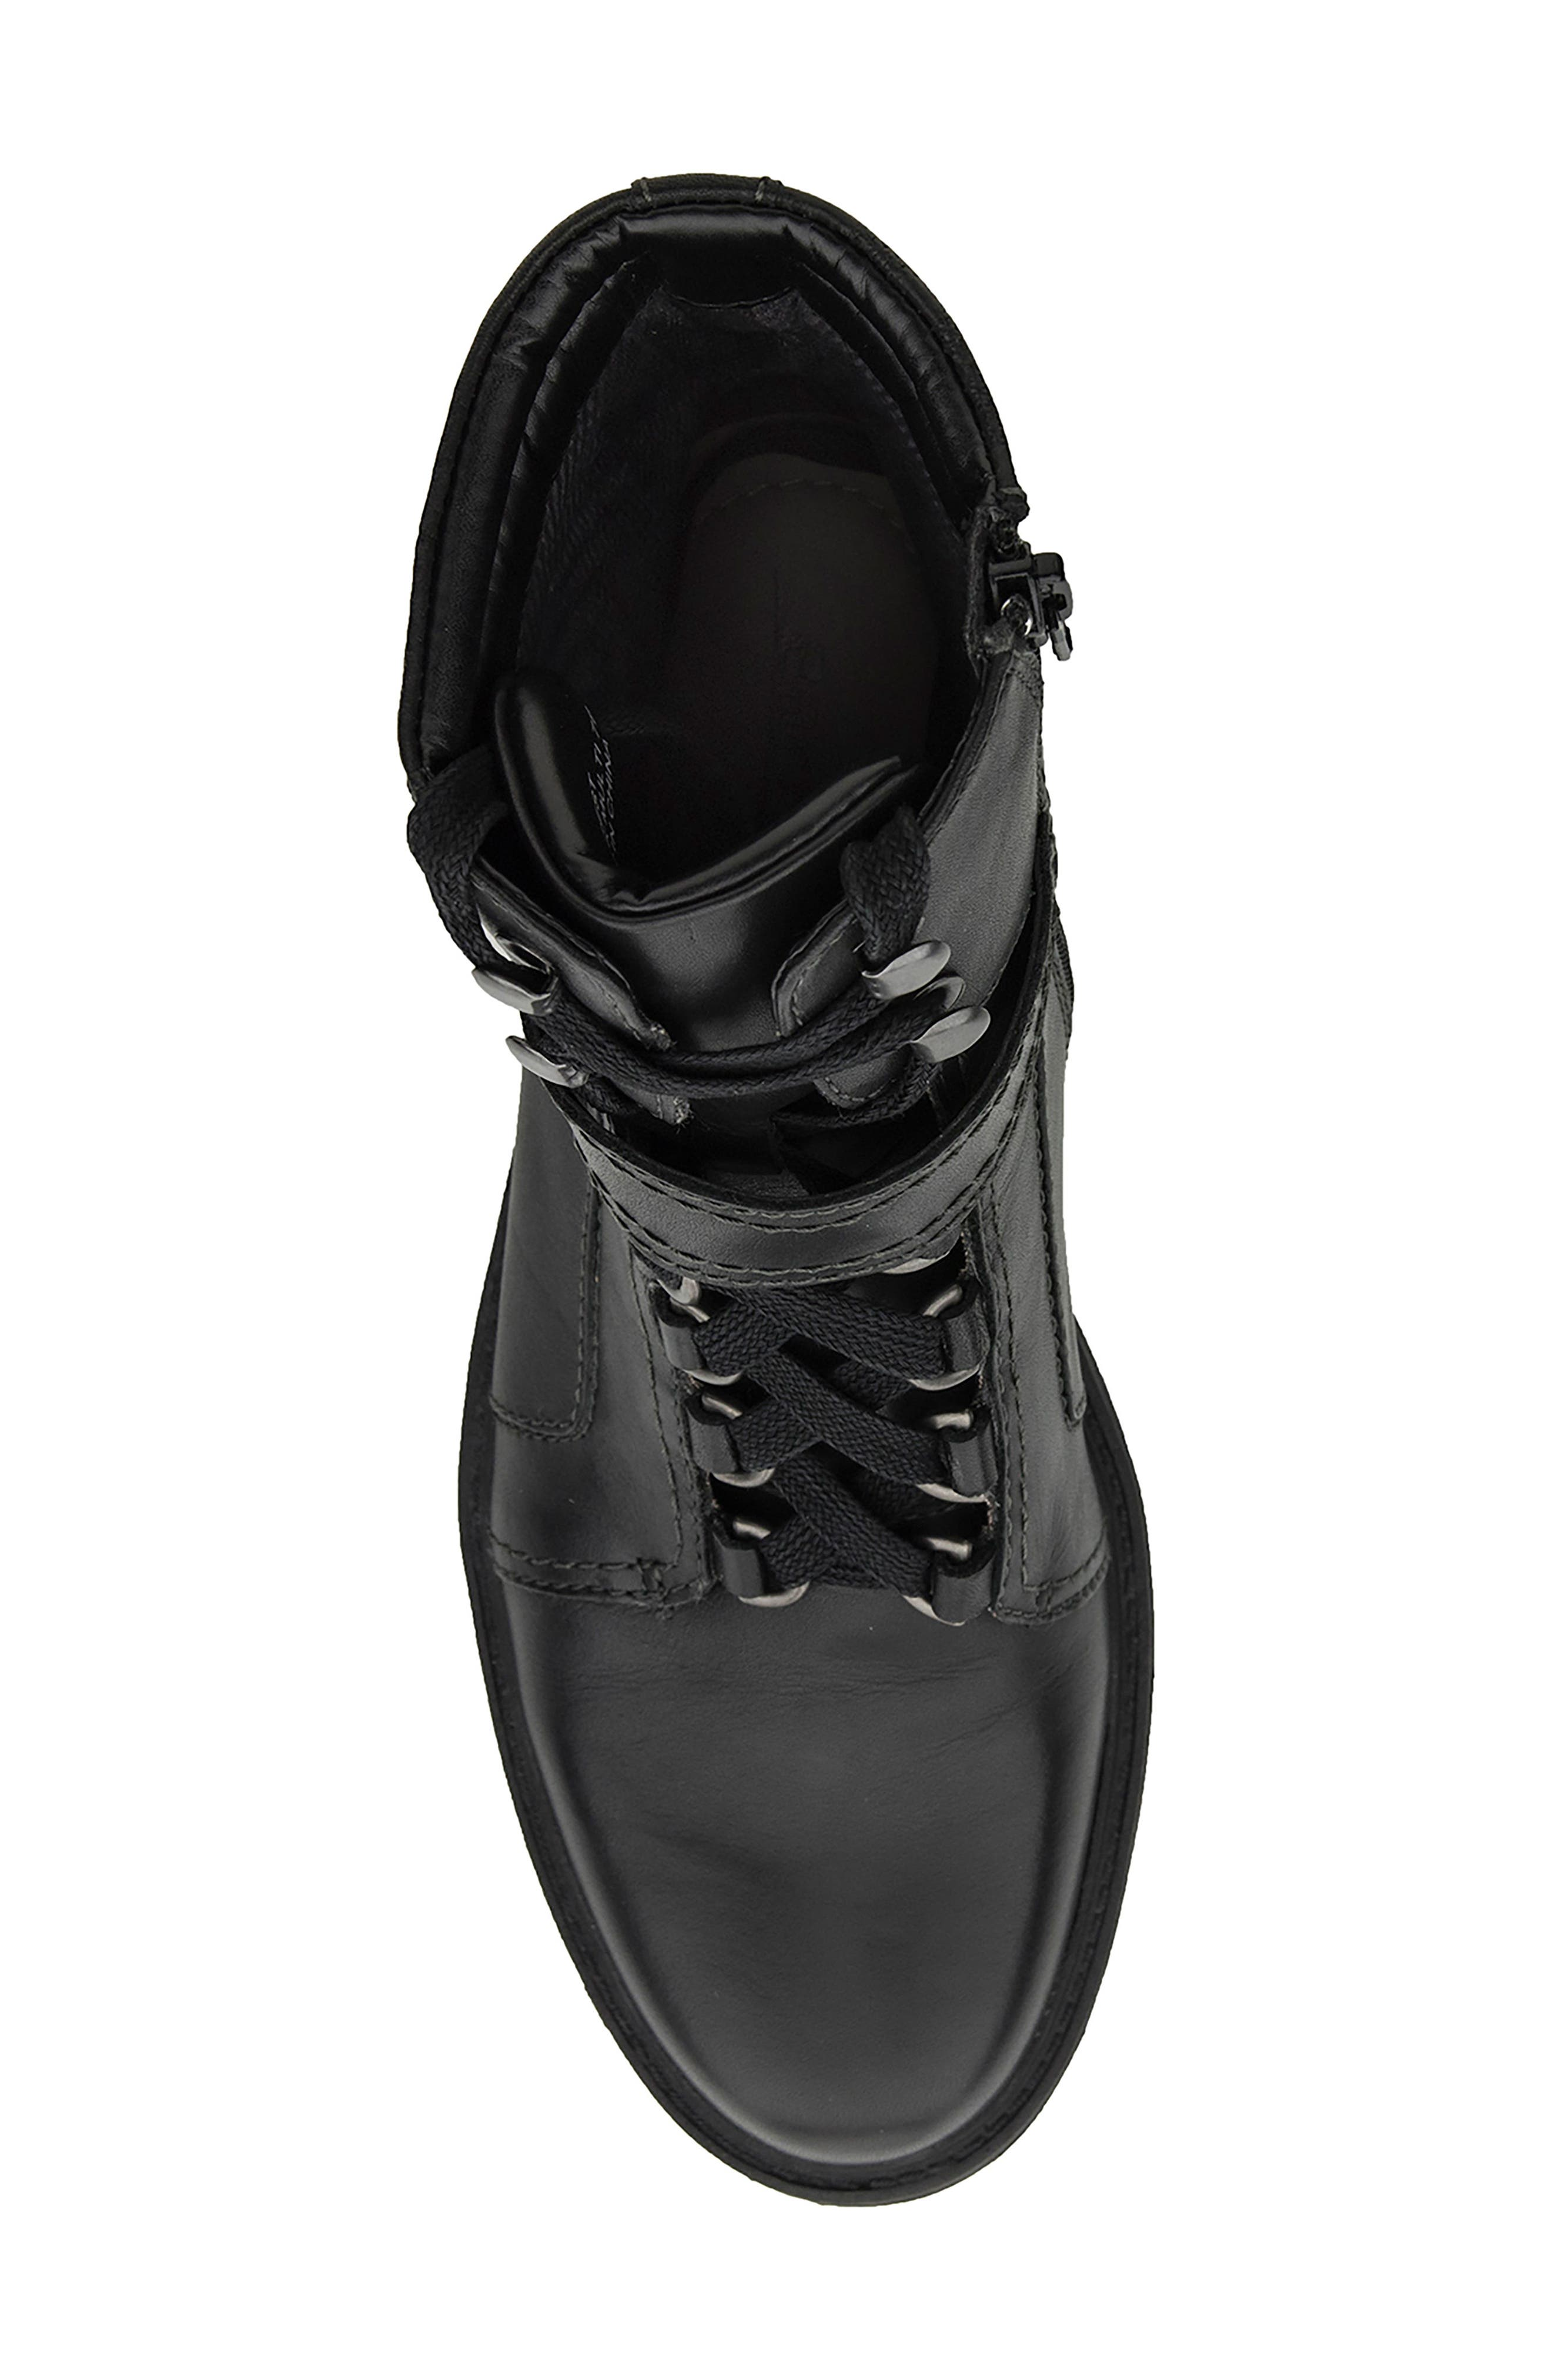 Everest Lace-Up Boot,                             Alternate thumbnail 5, color,                             001